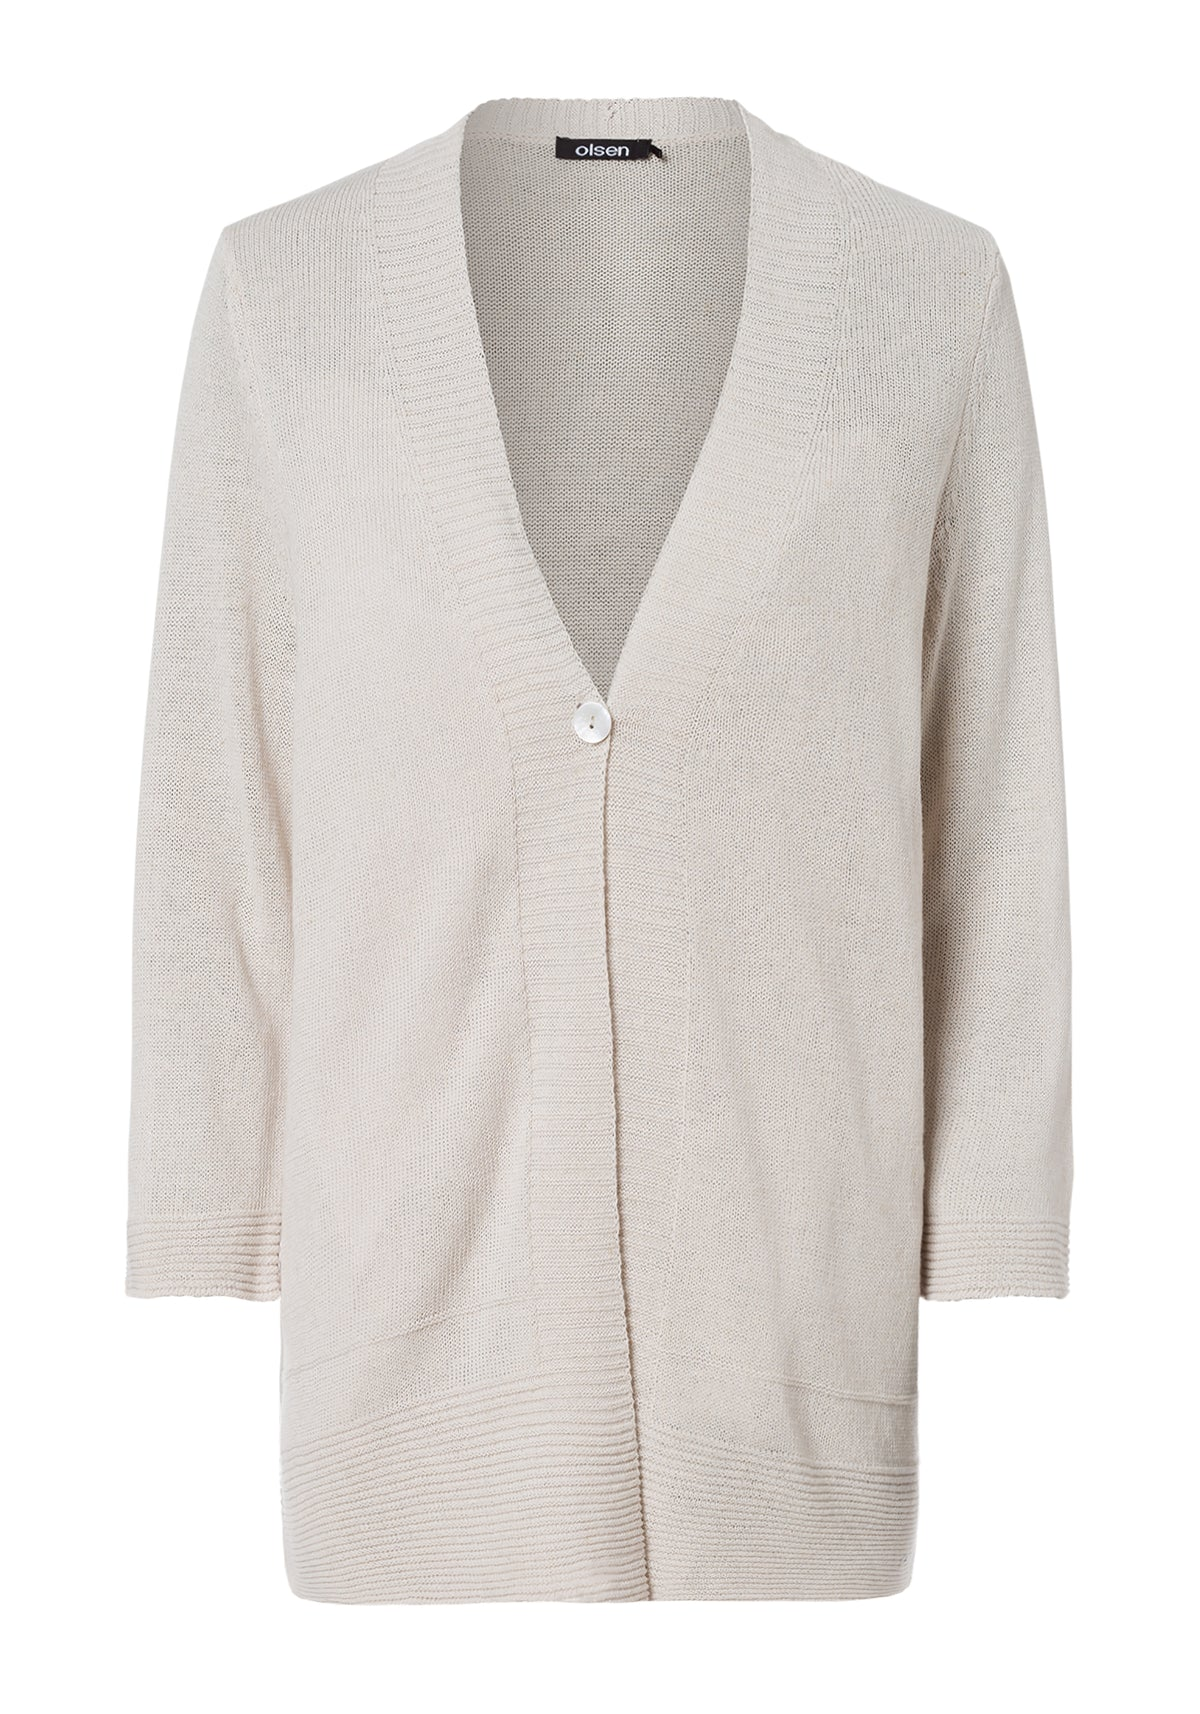 Solid V-Neck Linen Blend Cardigan